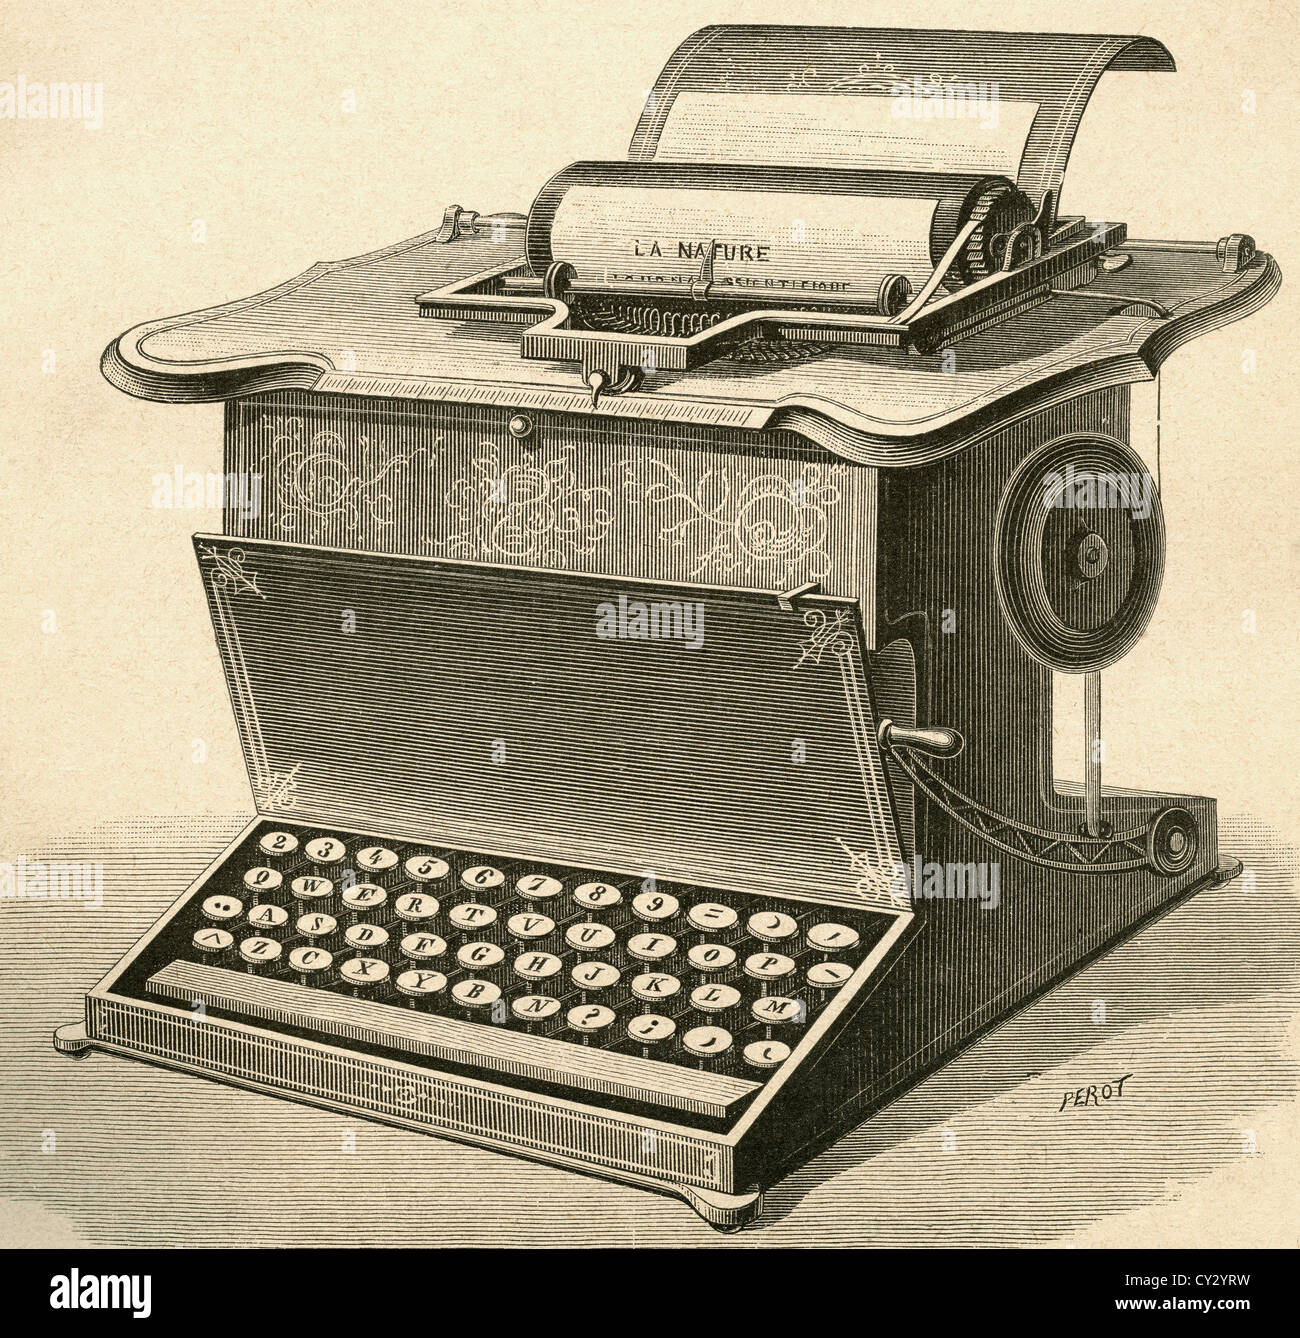 19th century typewriter. - Stock Image